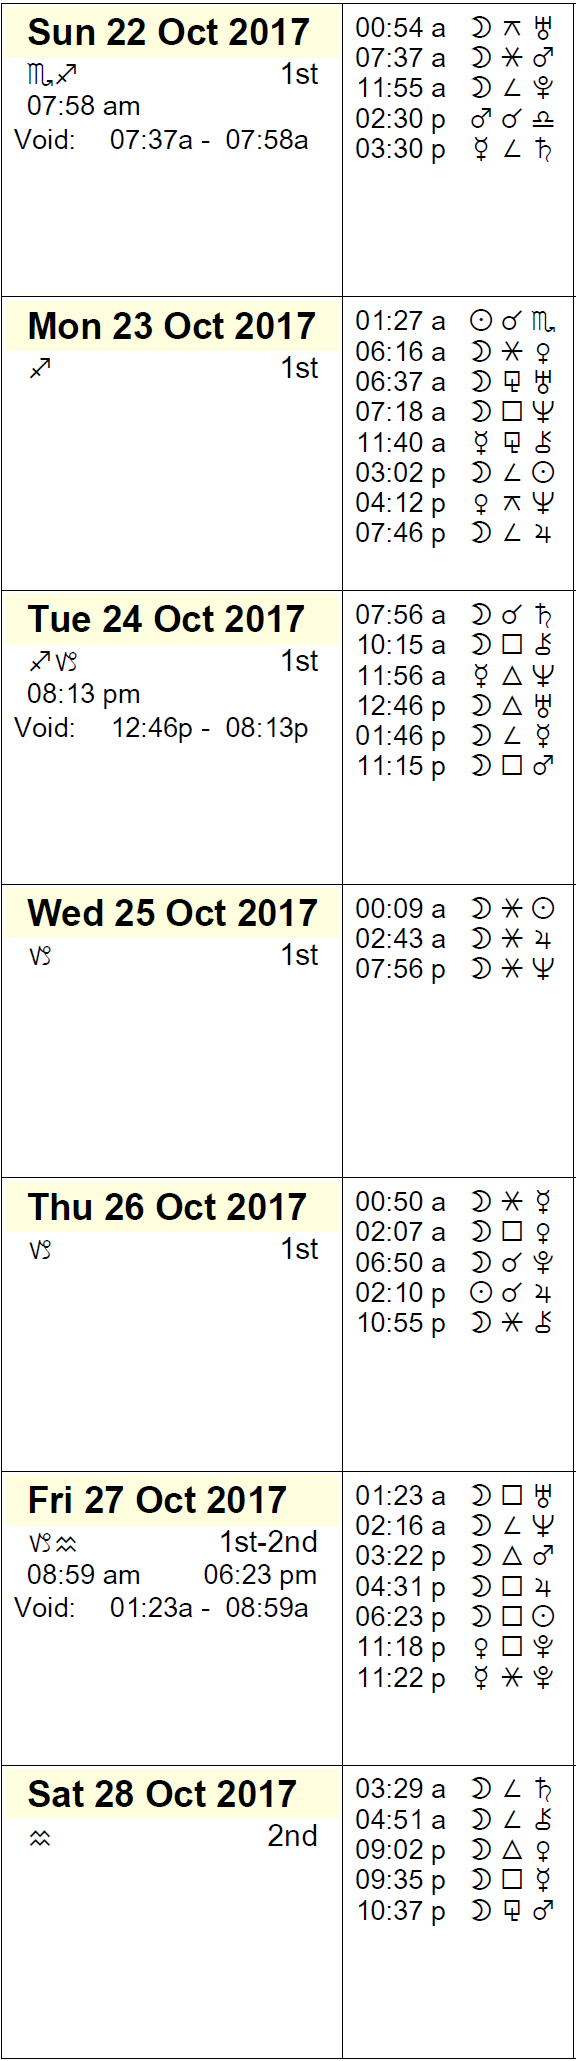 This Week in Astrology Calendar: October 22nd to 28th, 2017